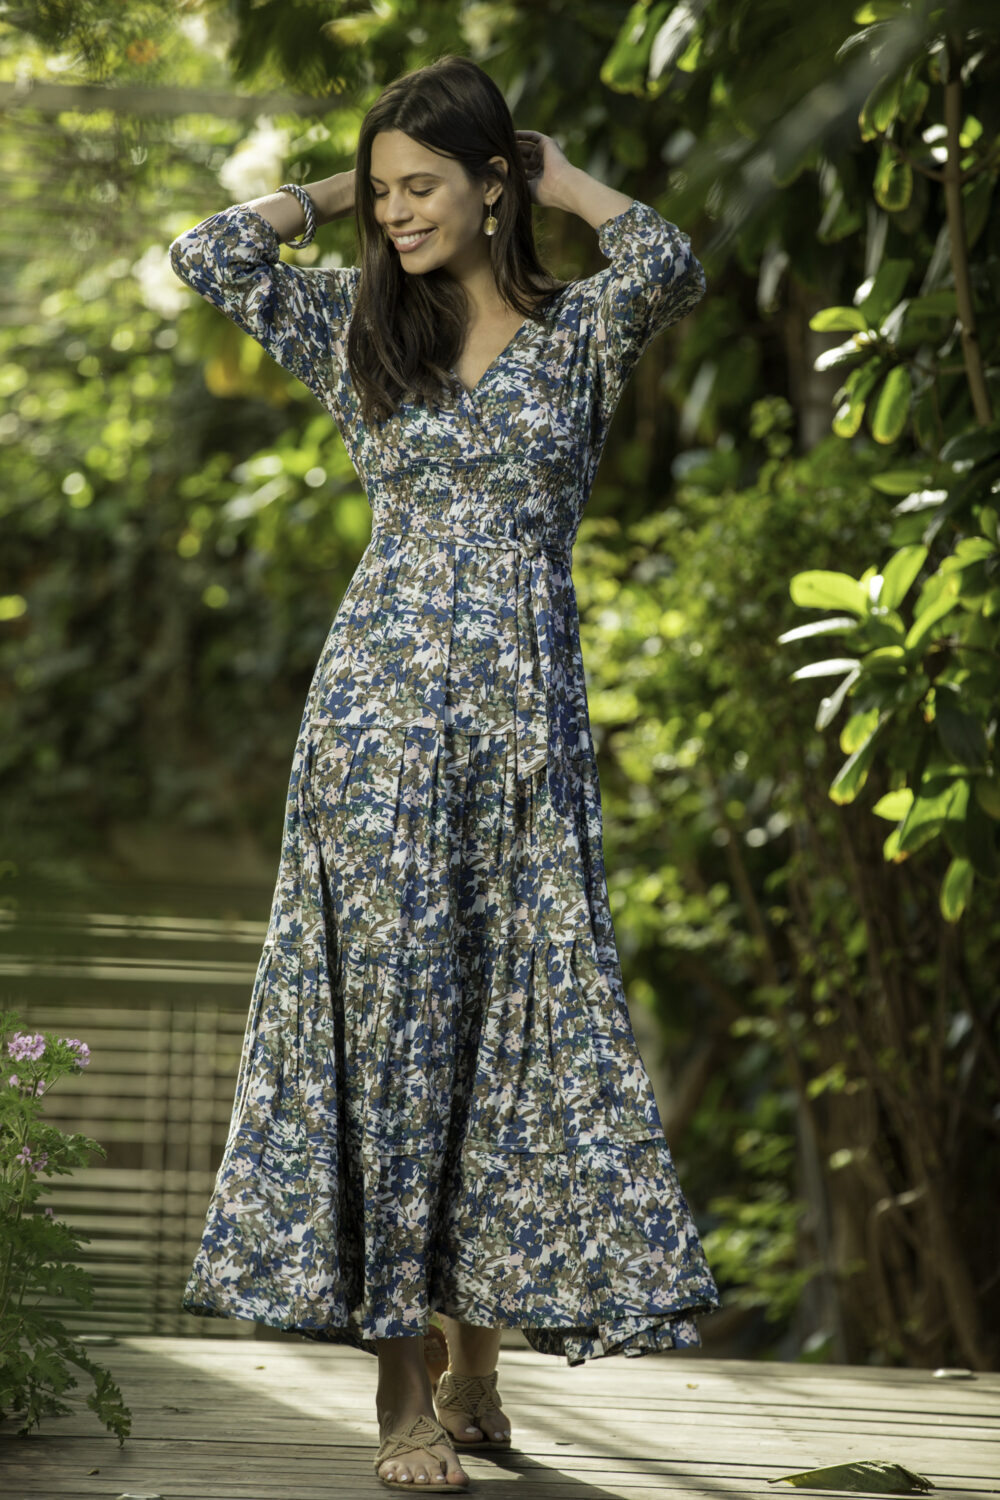 """Romantic Floral 3/4 Sleeves Maxi Dress, Boho Chic Spring Evening Empire Waist """"Carrie"""" Special Occasion Mid Day Dress"""